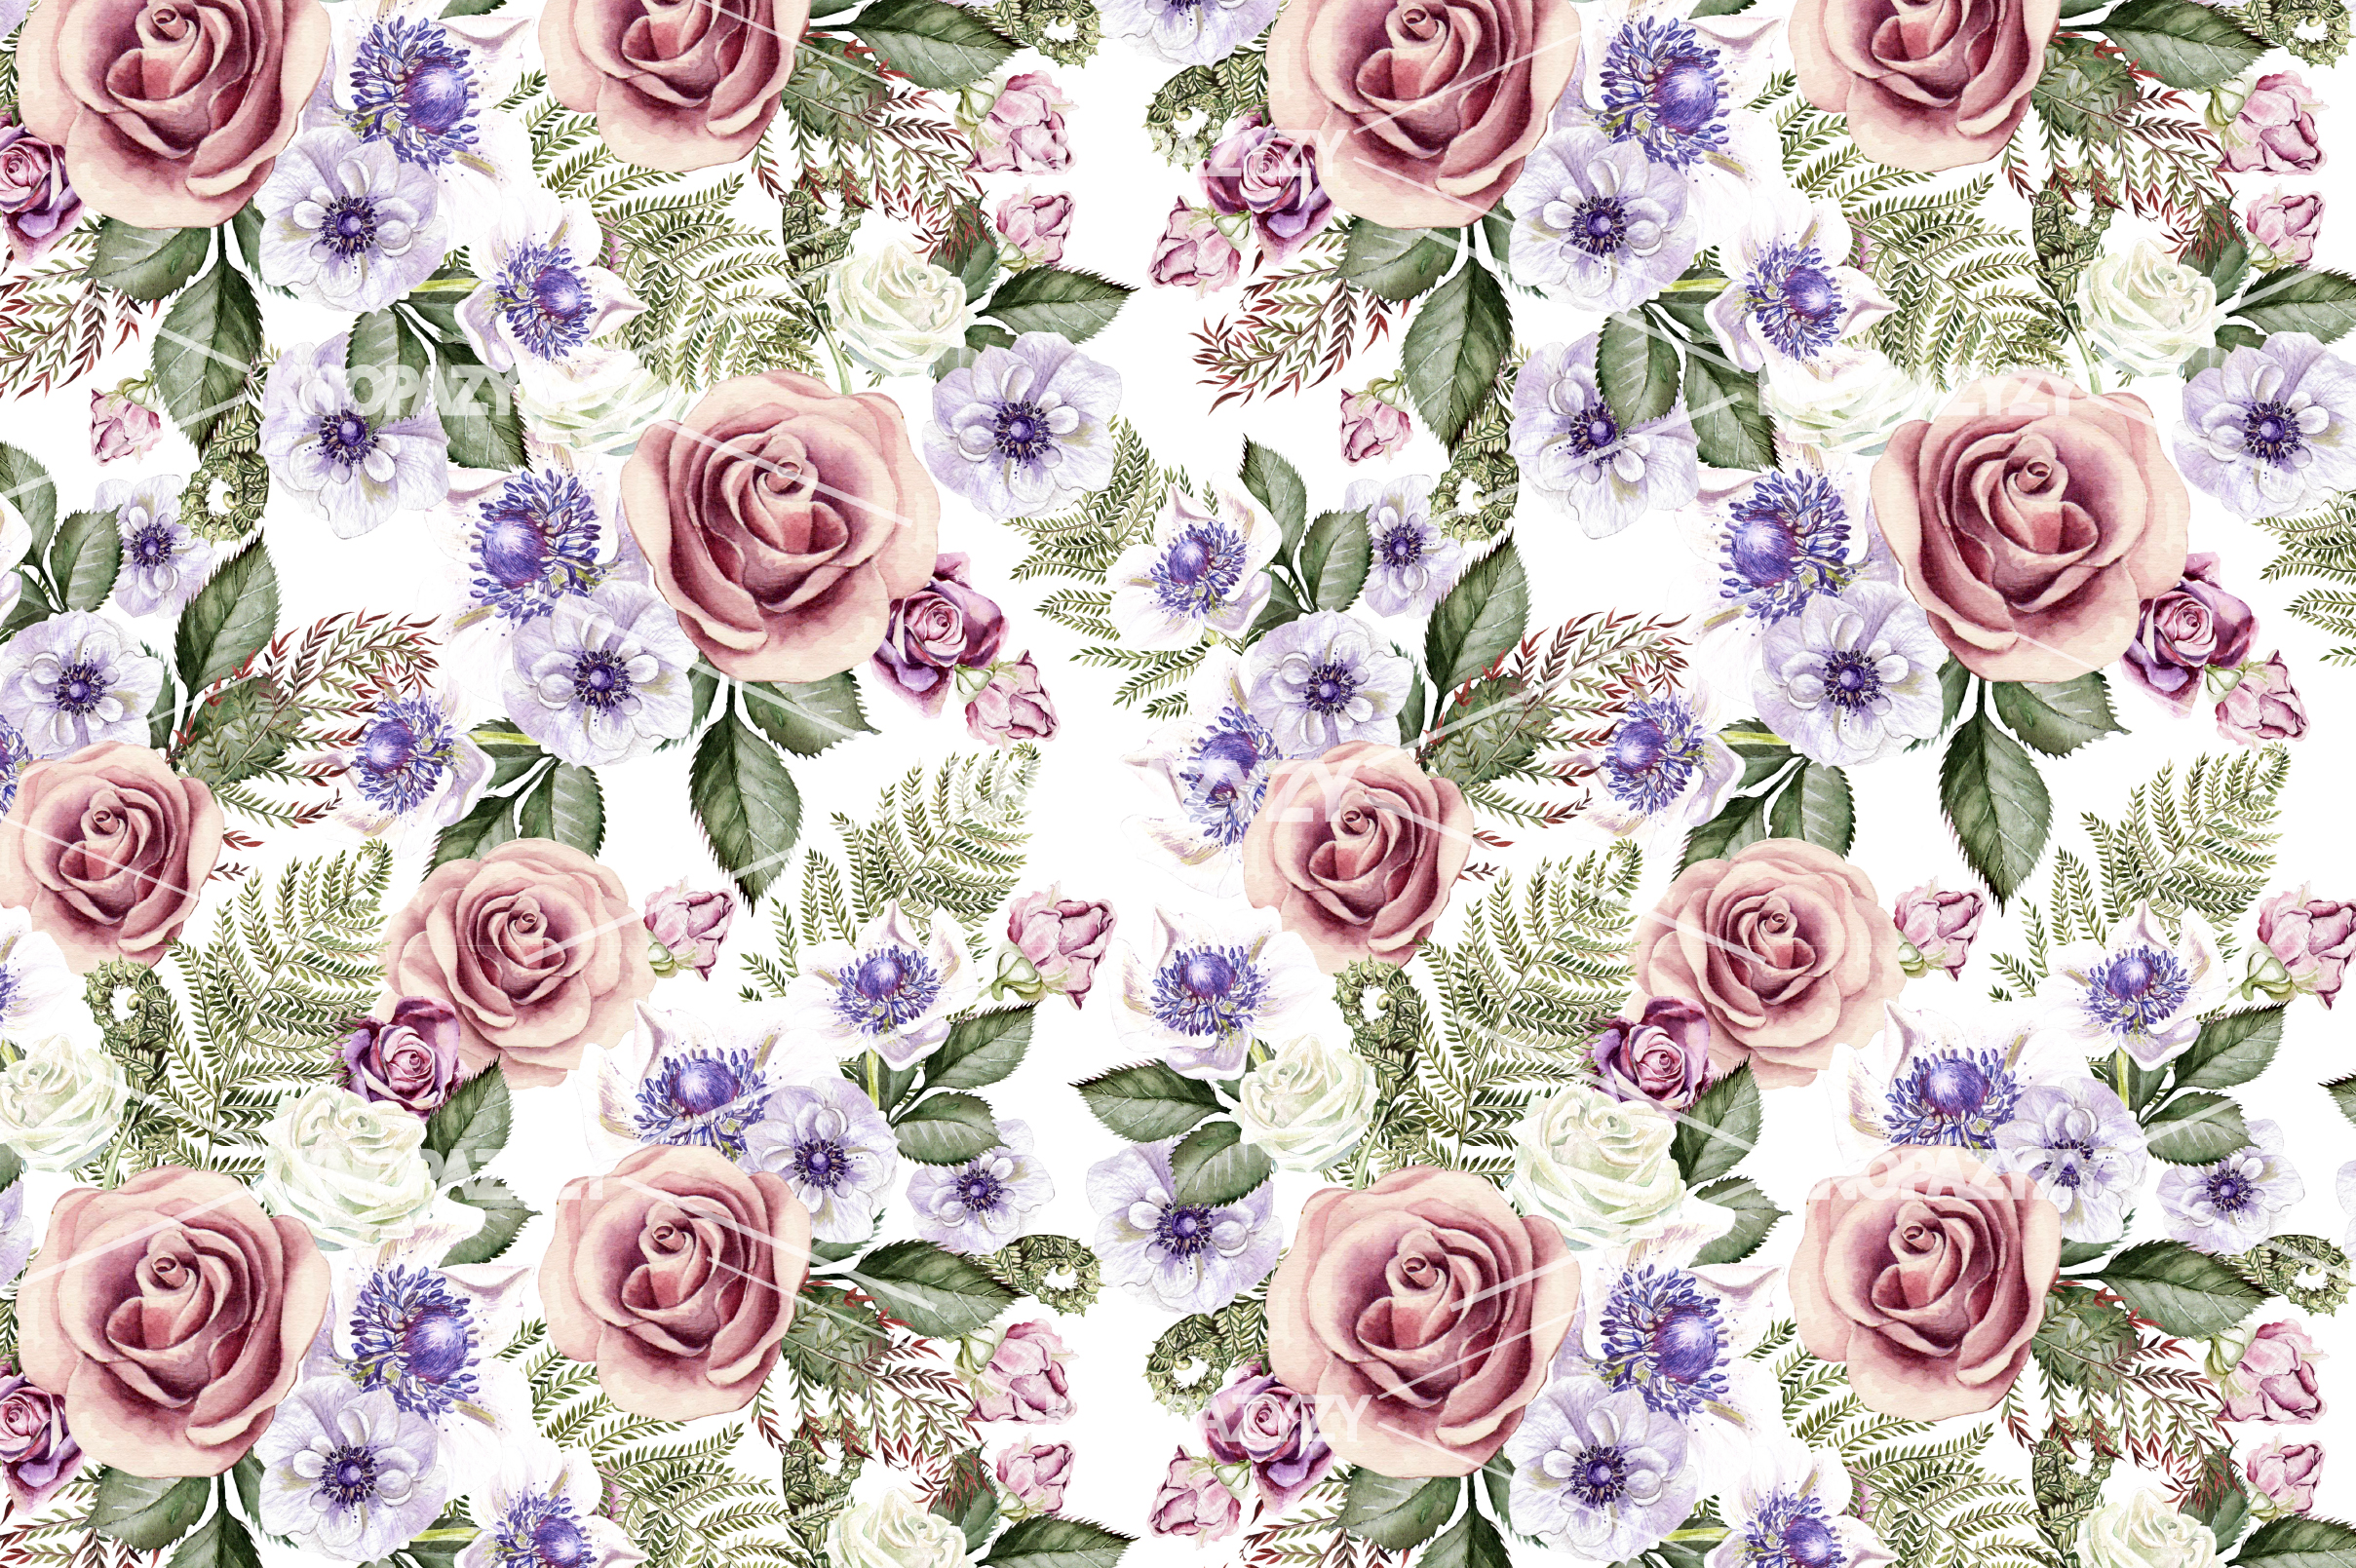 14 Hand drawn watercolor patterns example image 4